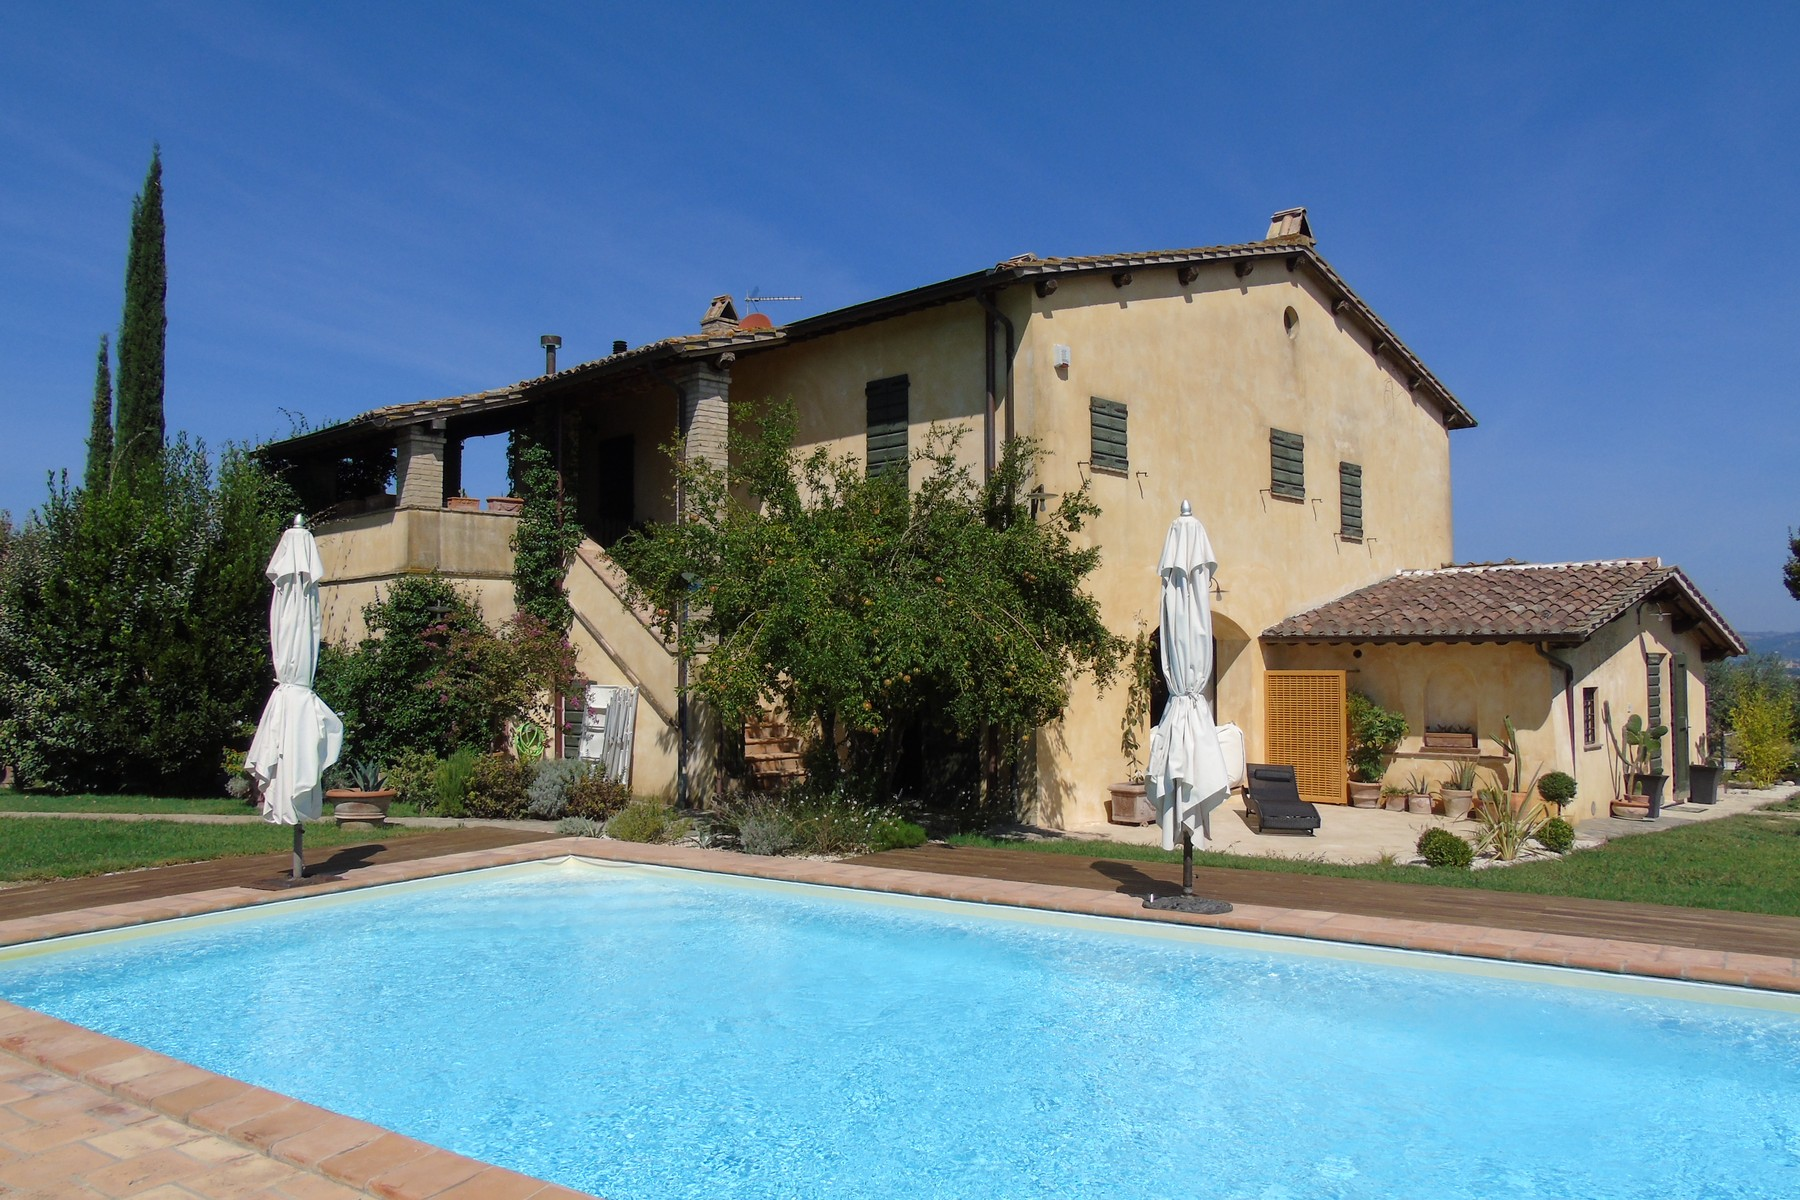 Lovely farmhouse with panaromic views of Assisi